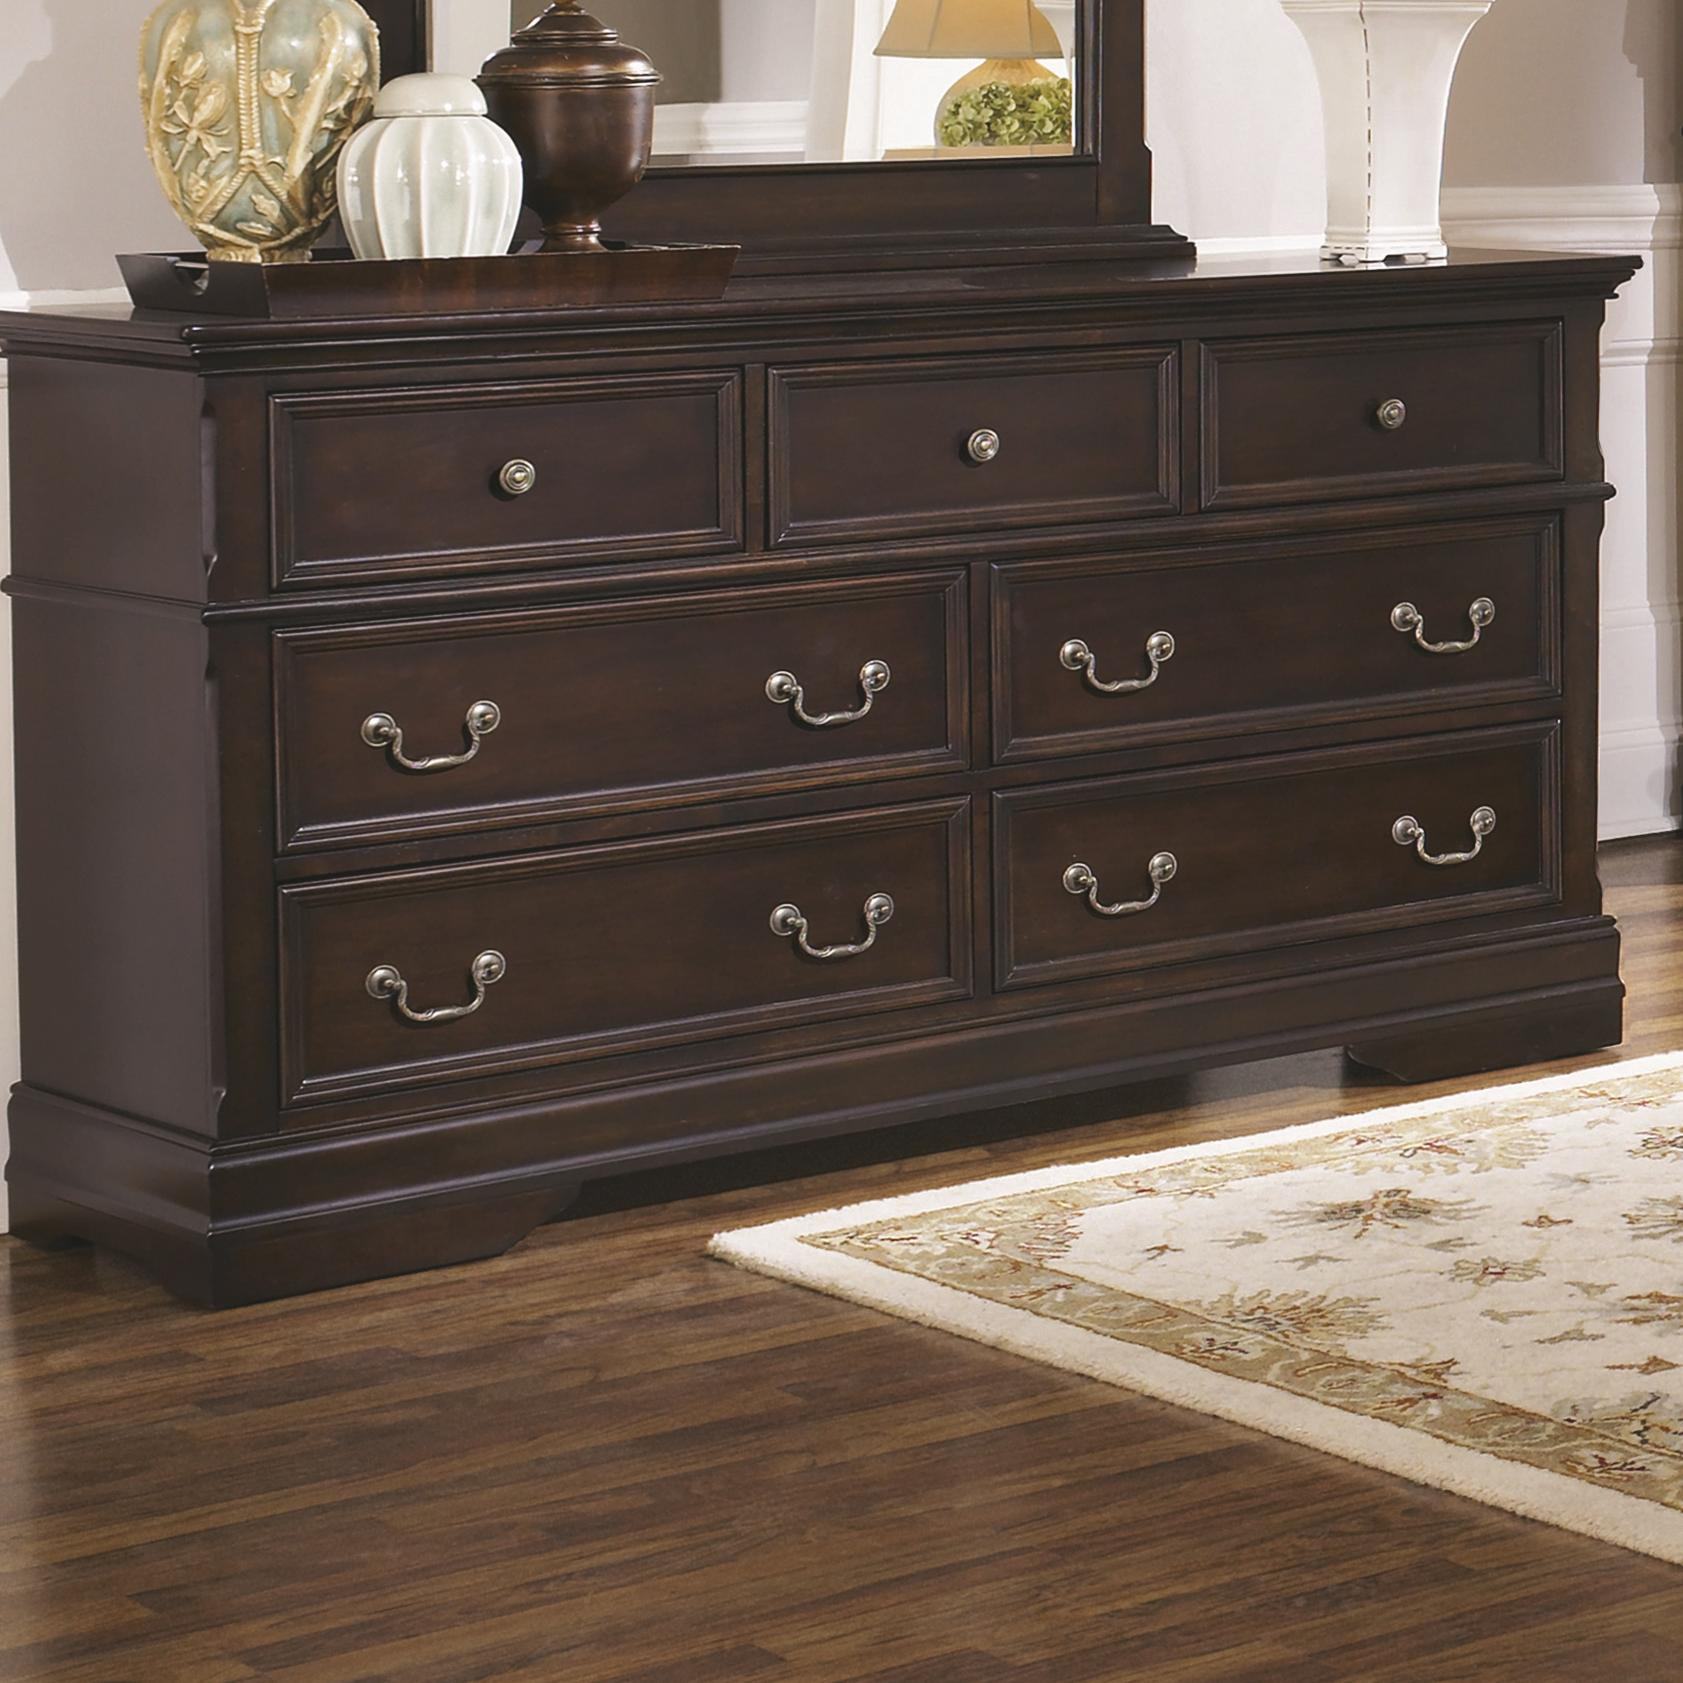 Coaster Cambridge Dresser - Item Number: 203193